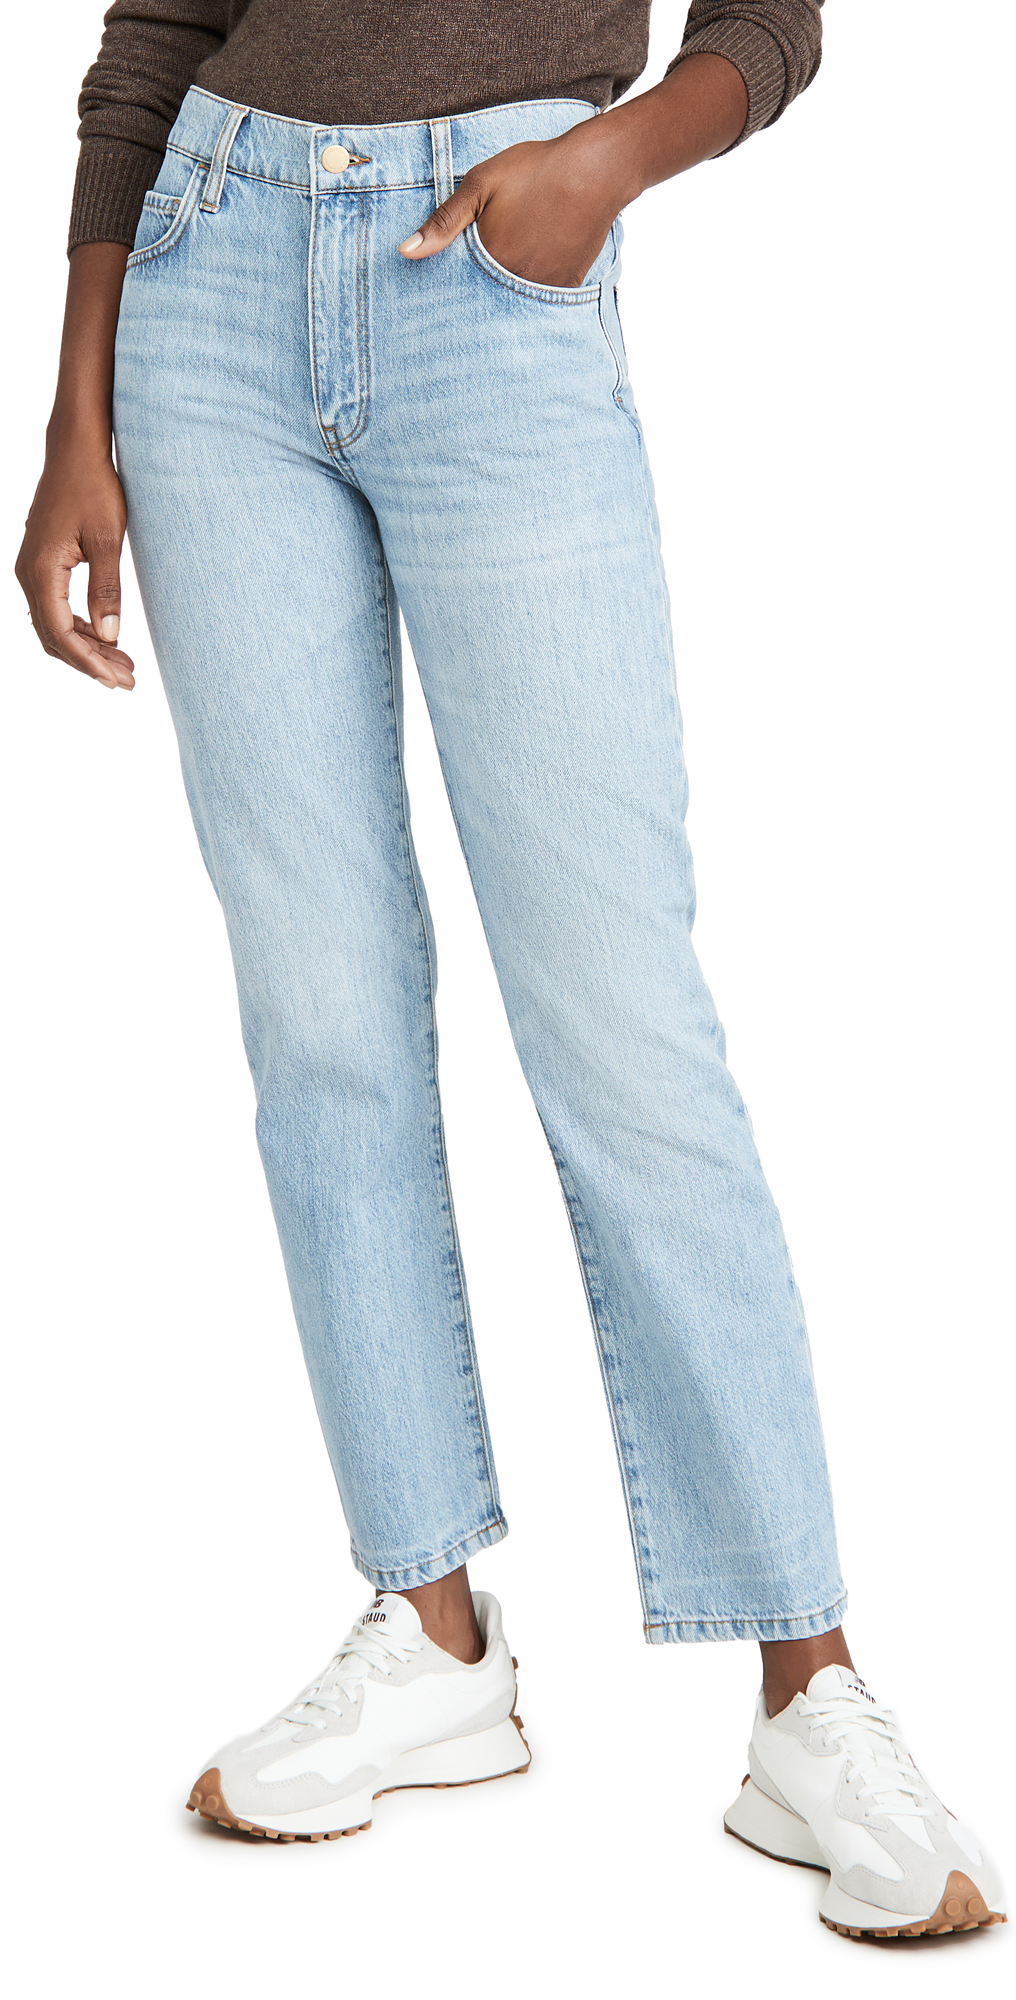 Triarchy Mid Rise Tapered Leg Jeans